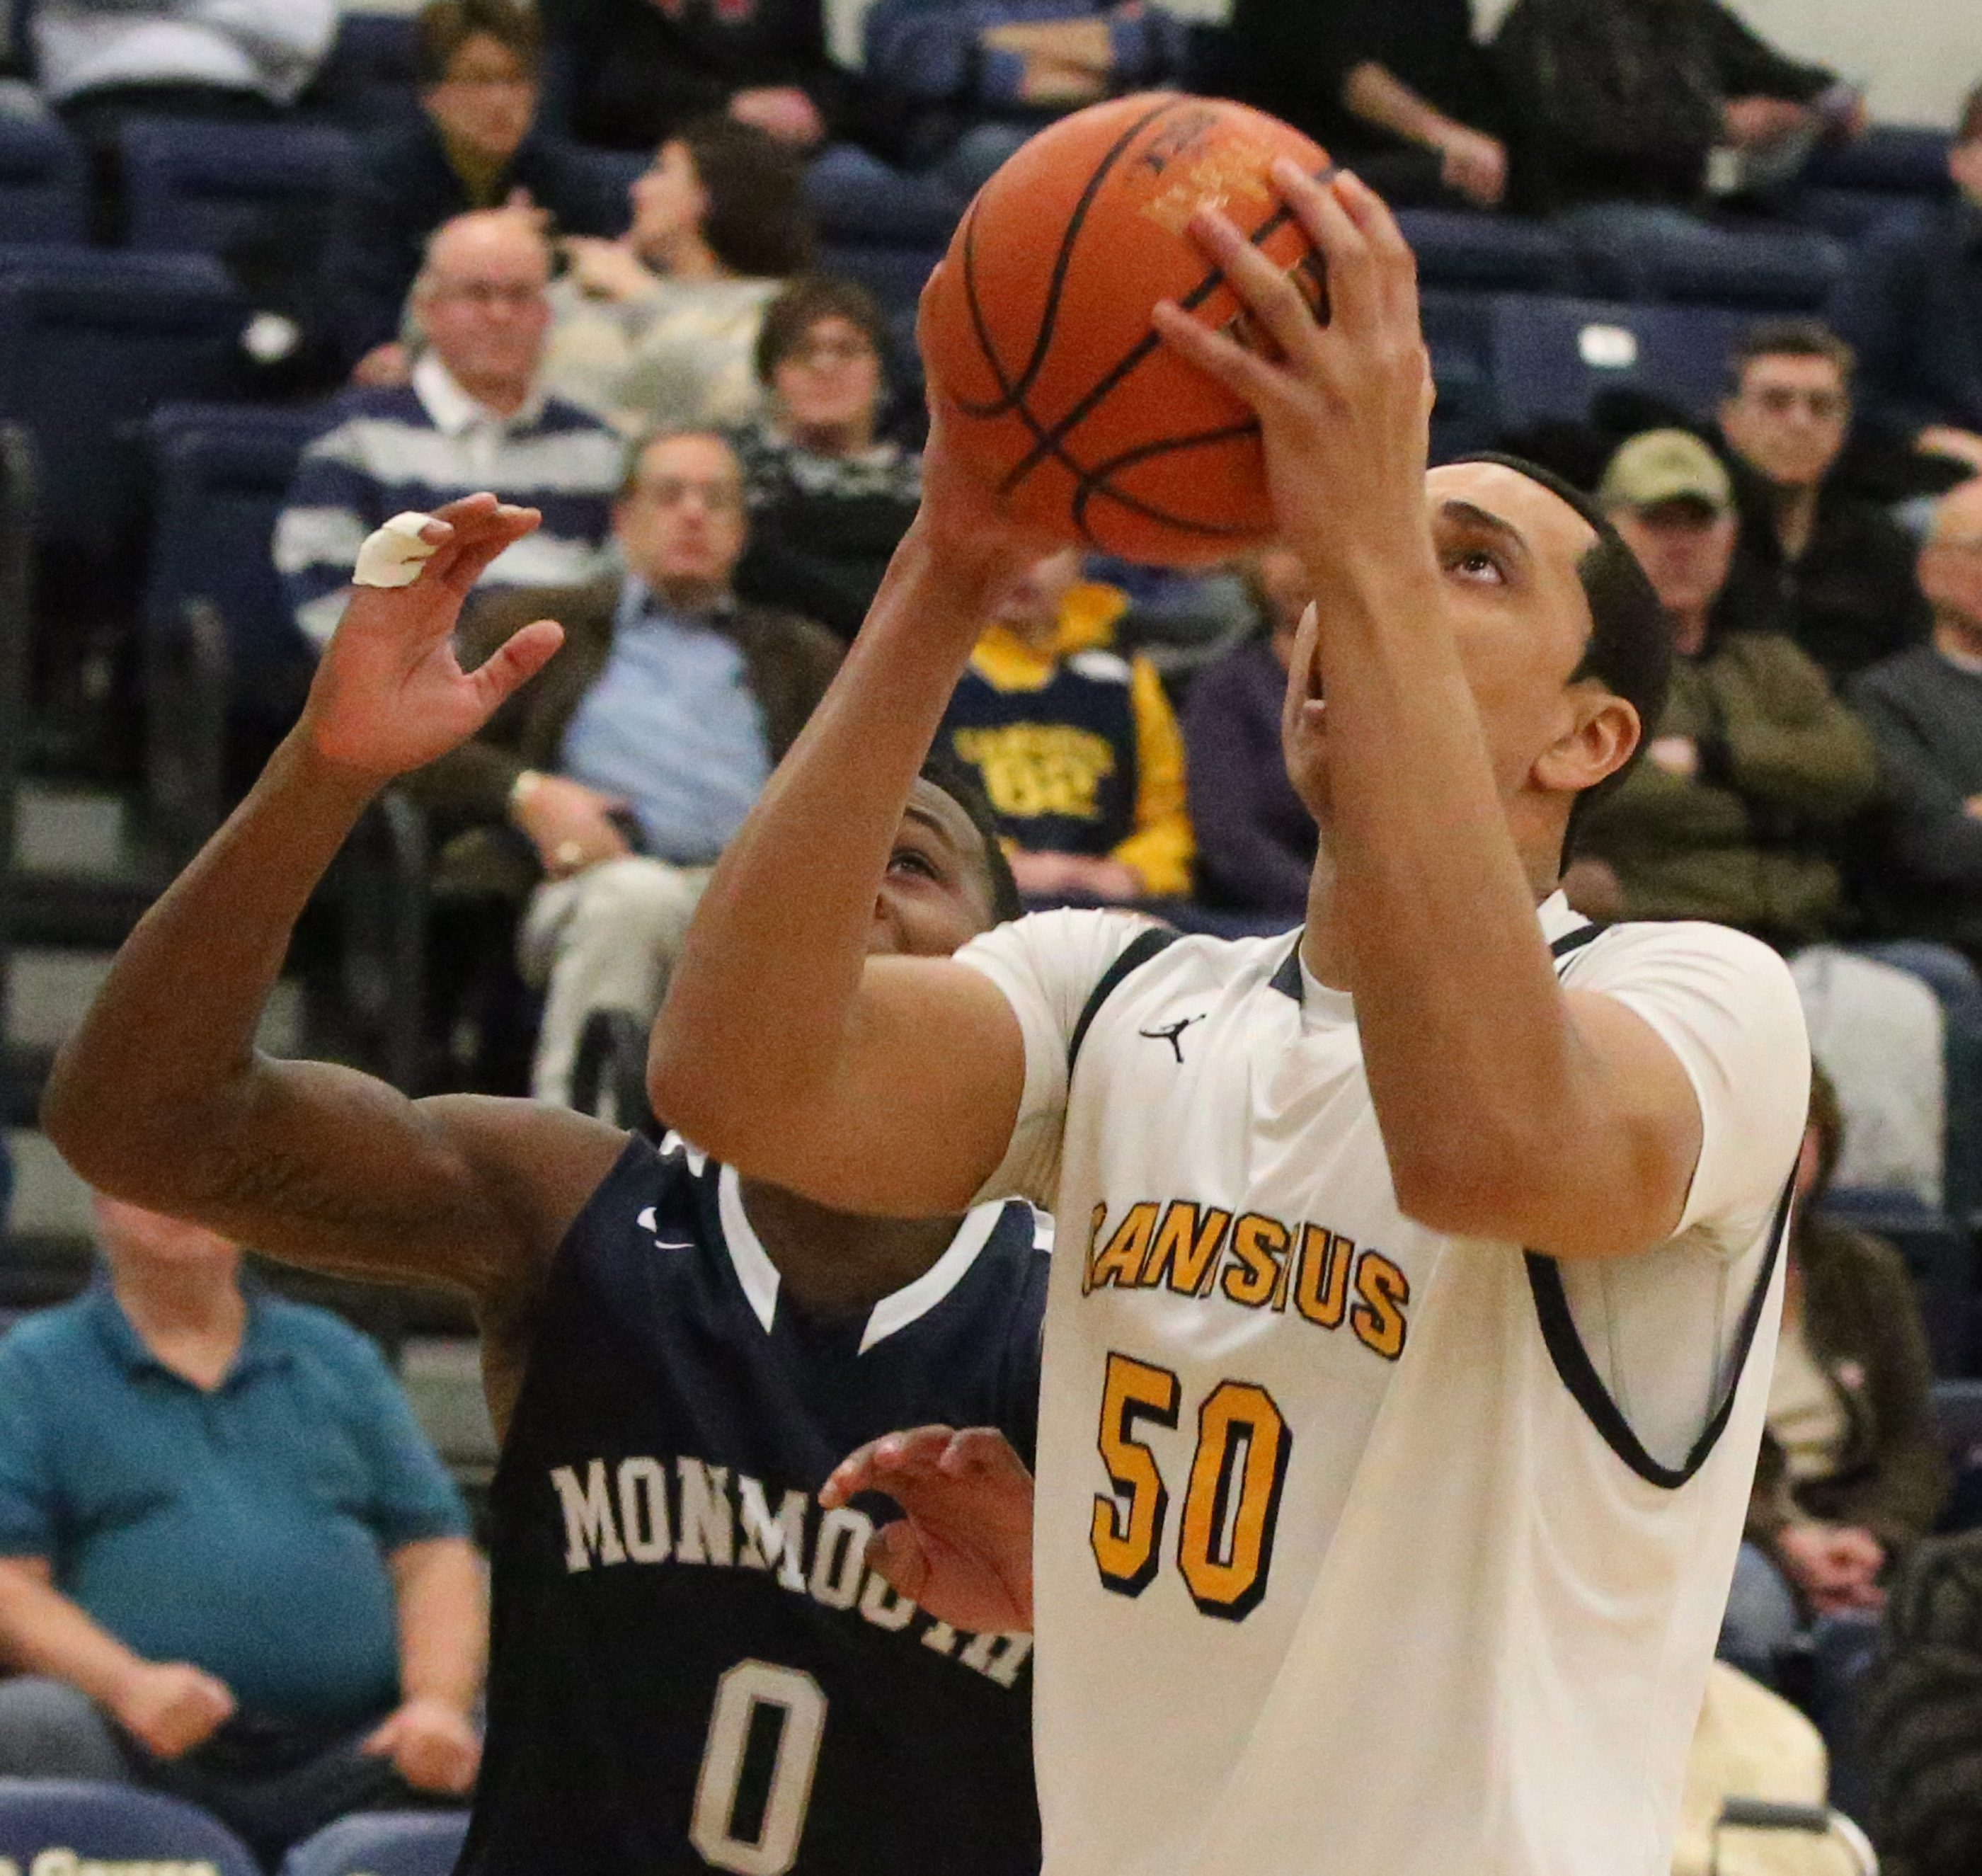 Josiah Heath and Canisius have lost twice to Monmouth this season by a combined nine points. The third meeting is Saturday.